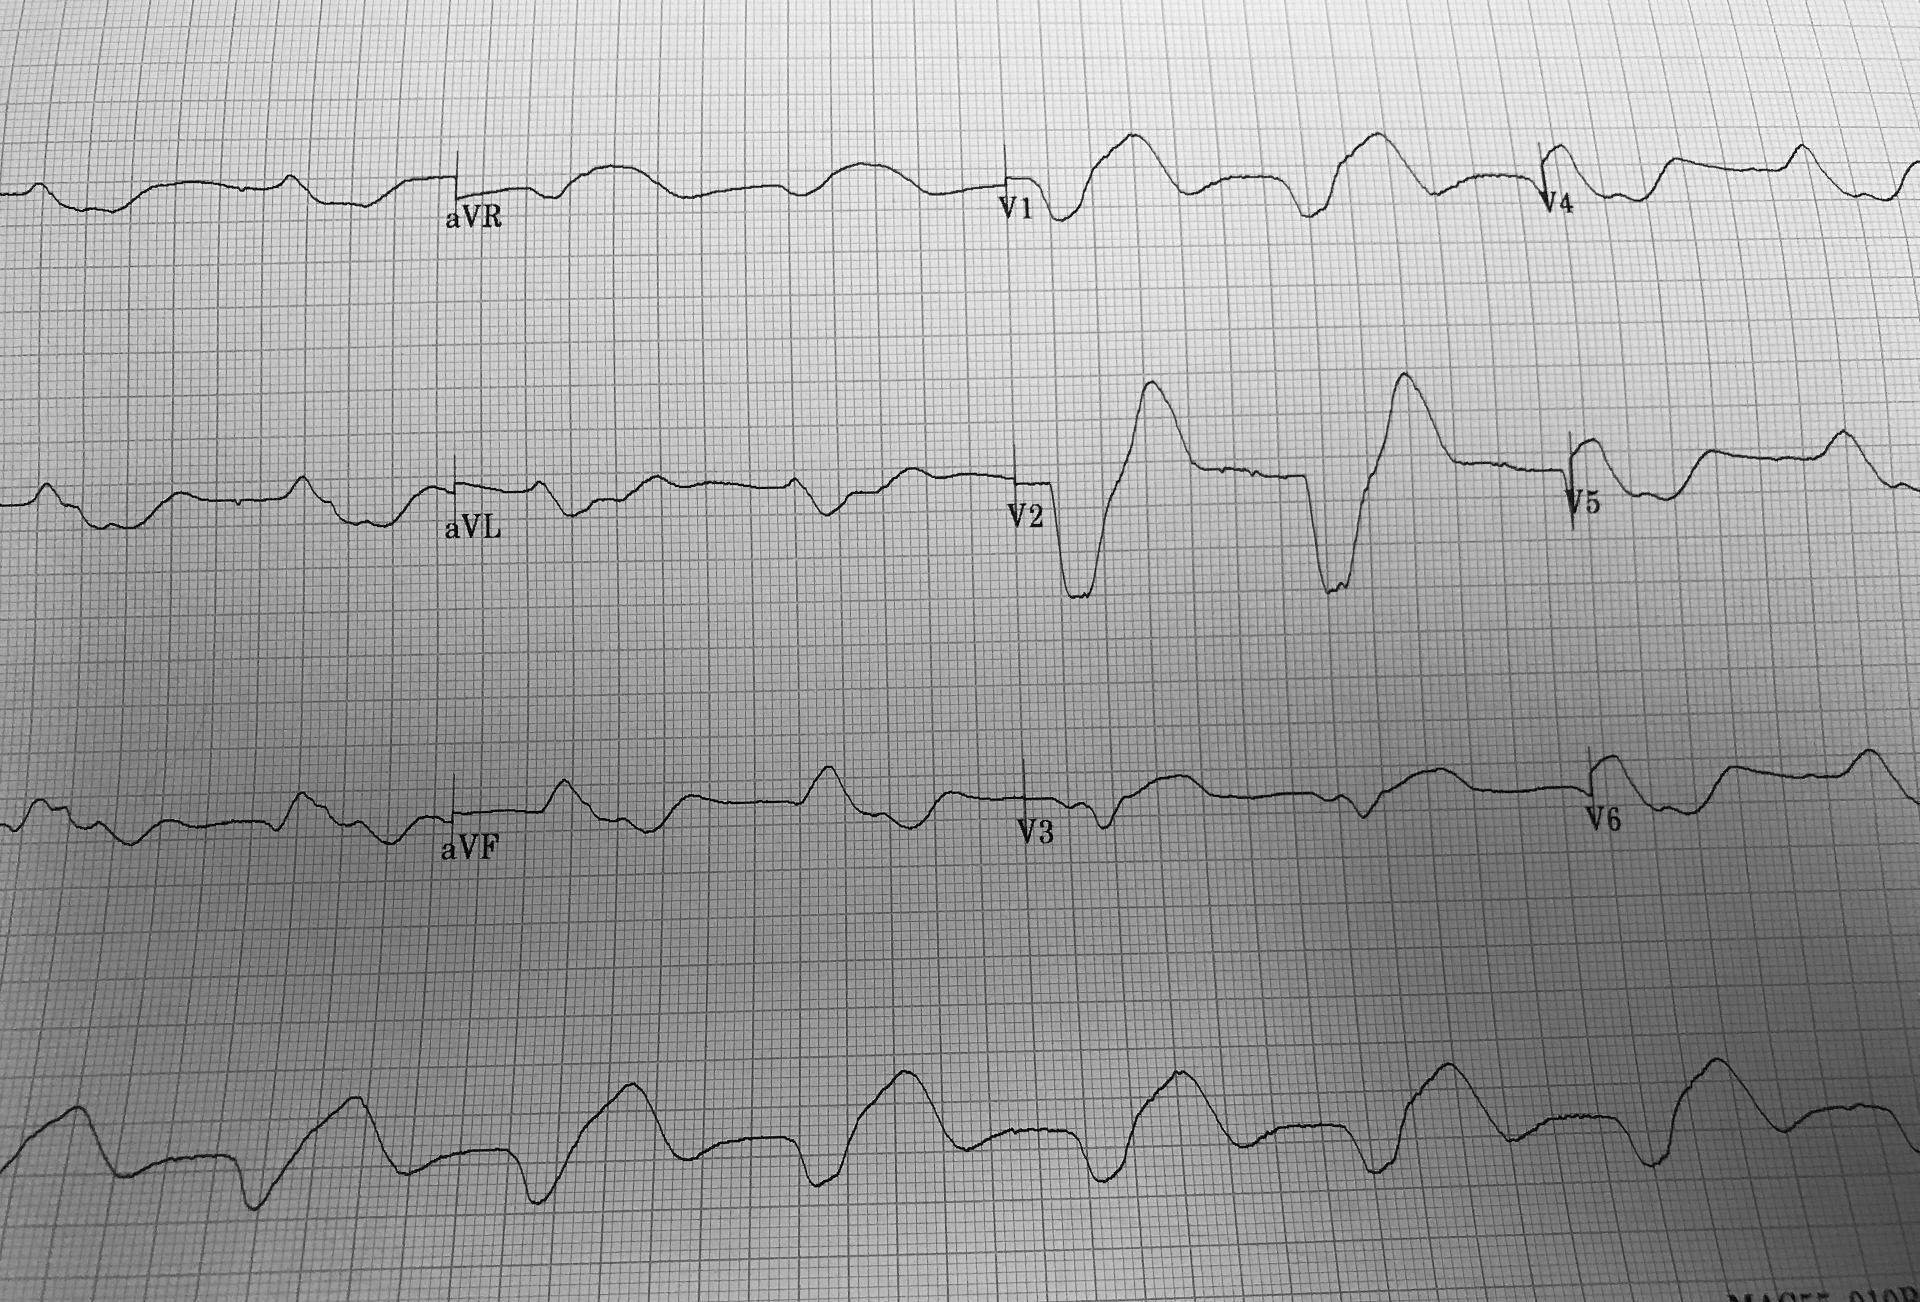 Electrocardiogram with a sine wave